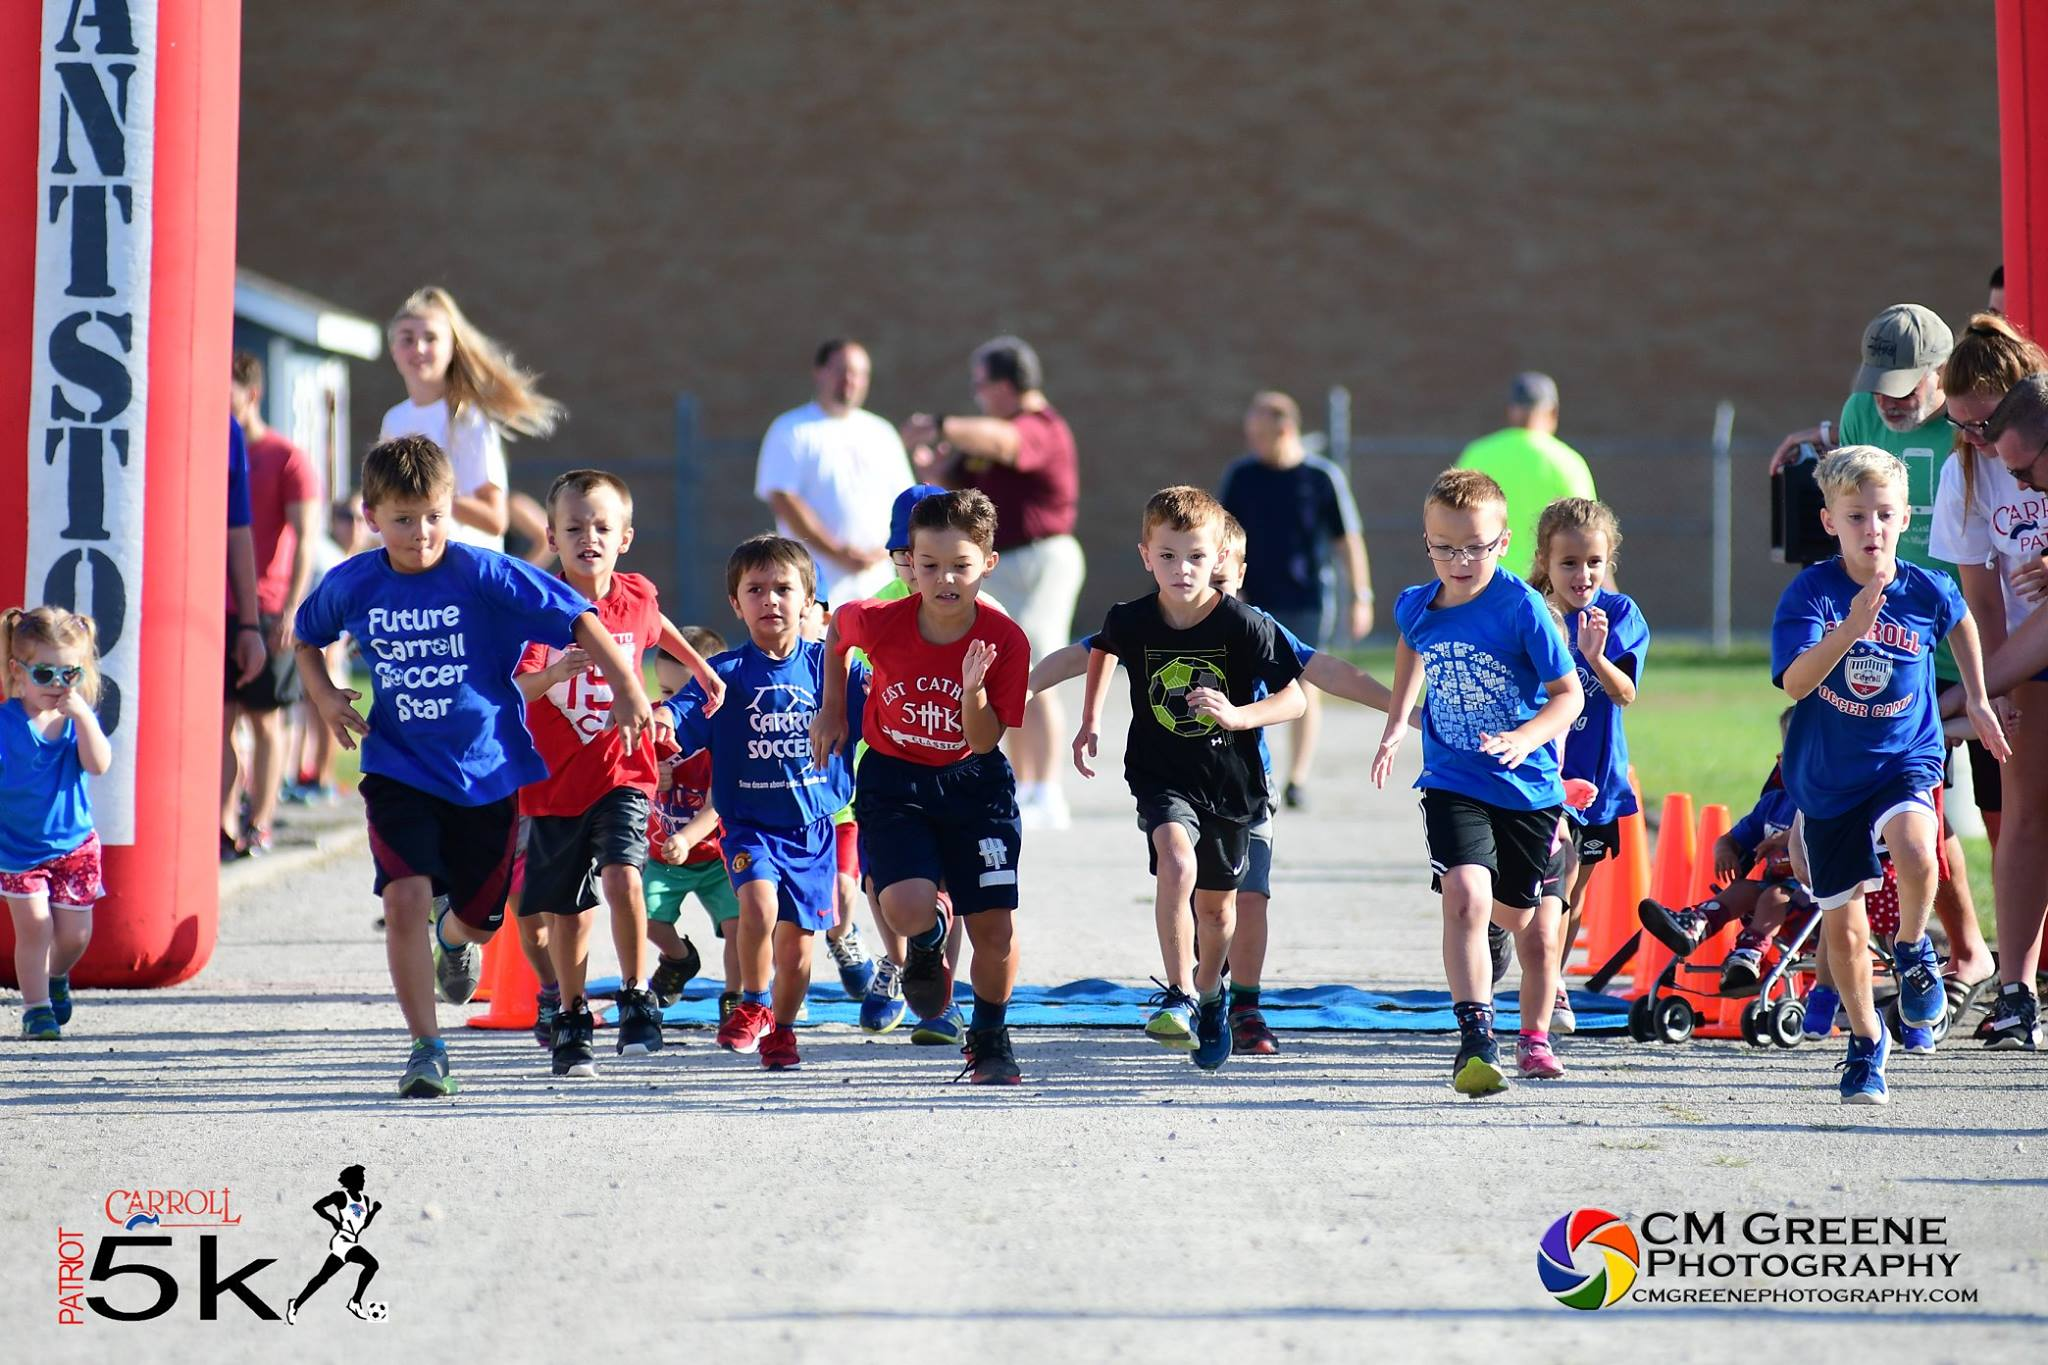 Patriot 5k and Little Pats' Lap in Dayton, Ohio